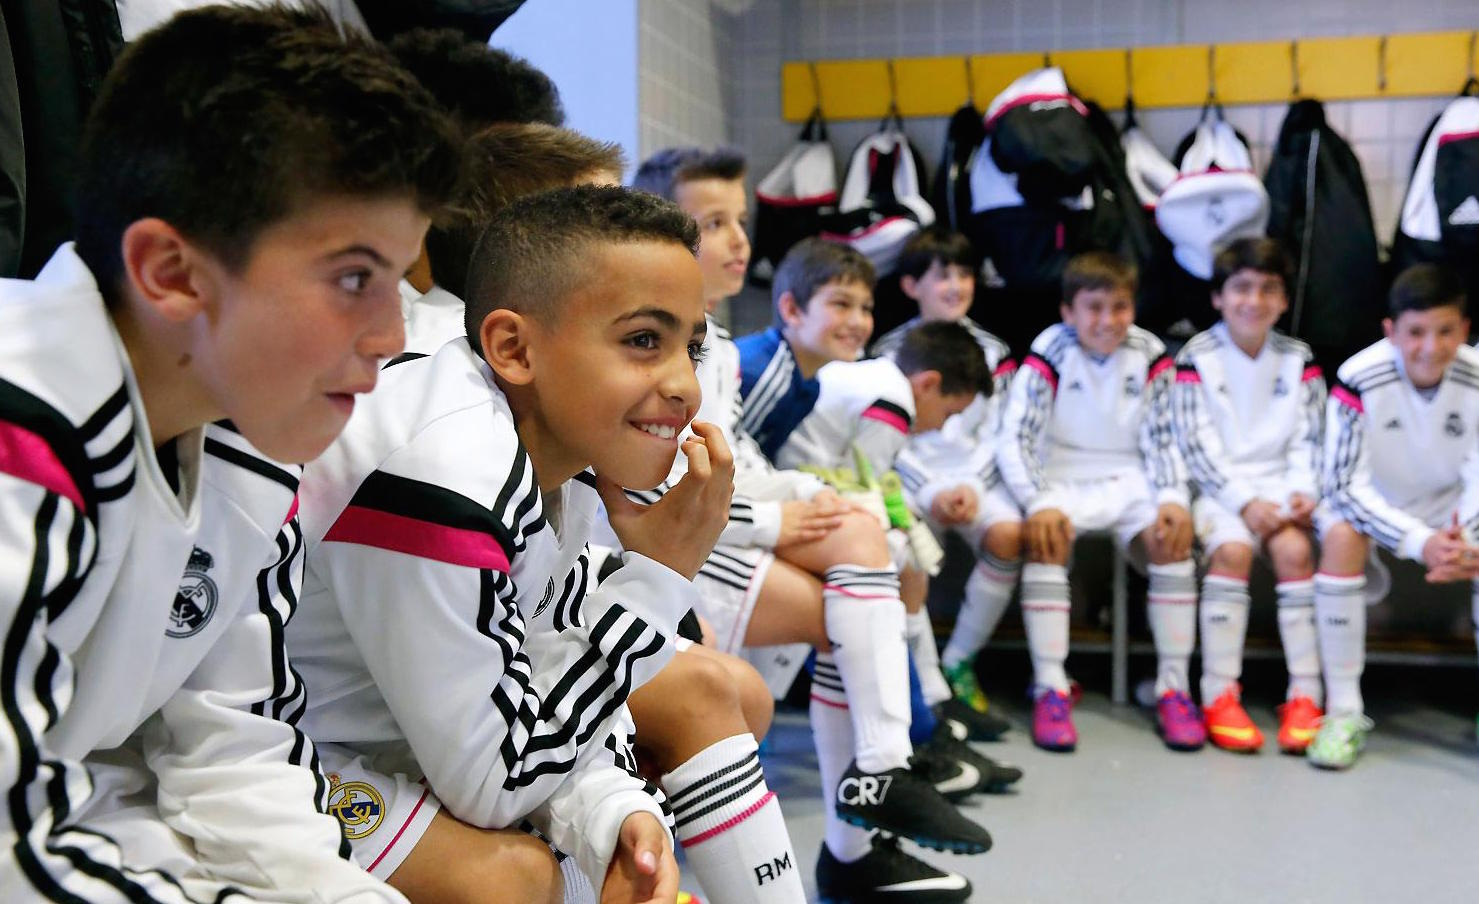 These Players Are Why FIFA Is Investigating Real Madrid for Underage Transfers